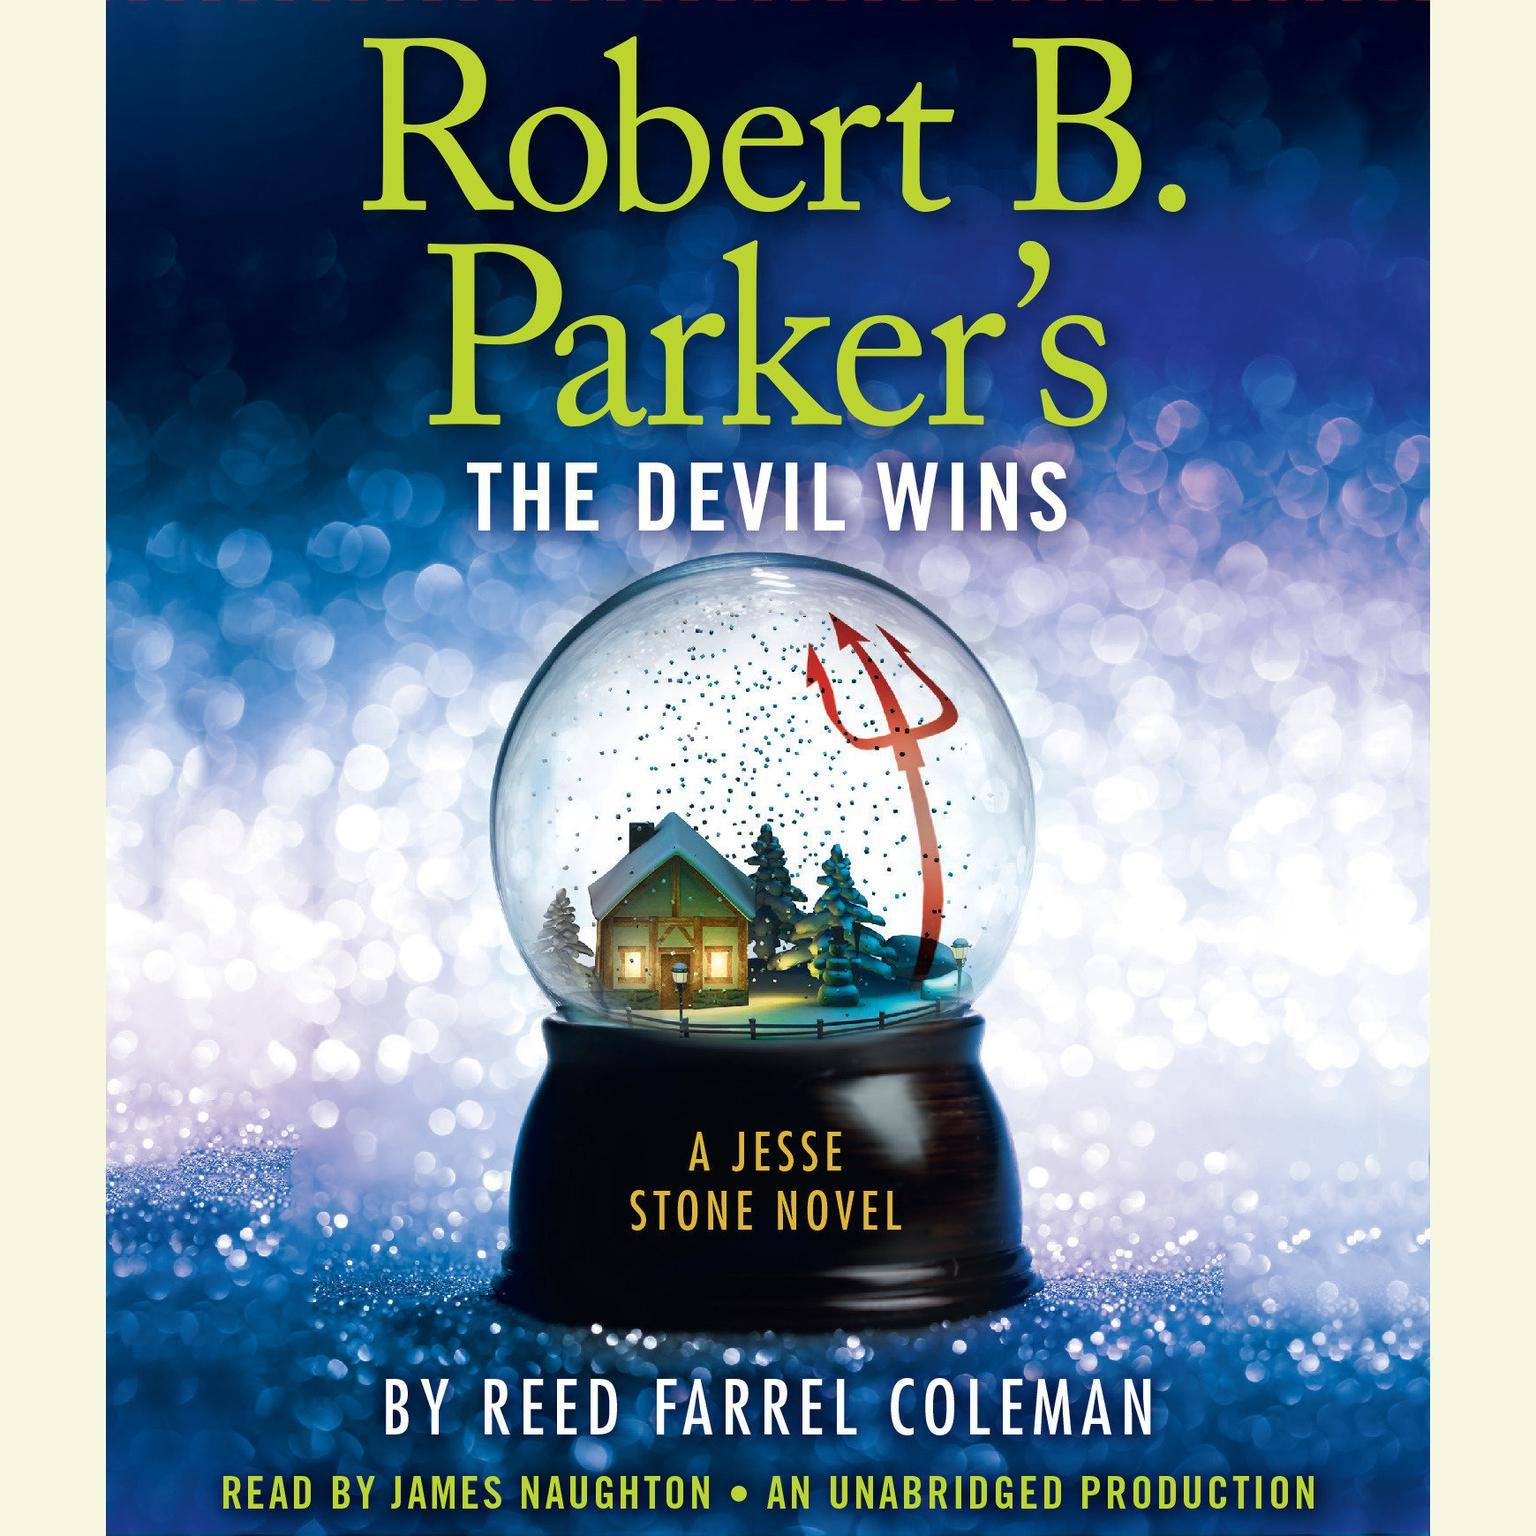 Printable Robert B. Parker's The Devil Wins Audiobook Cover Art